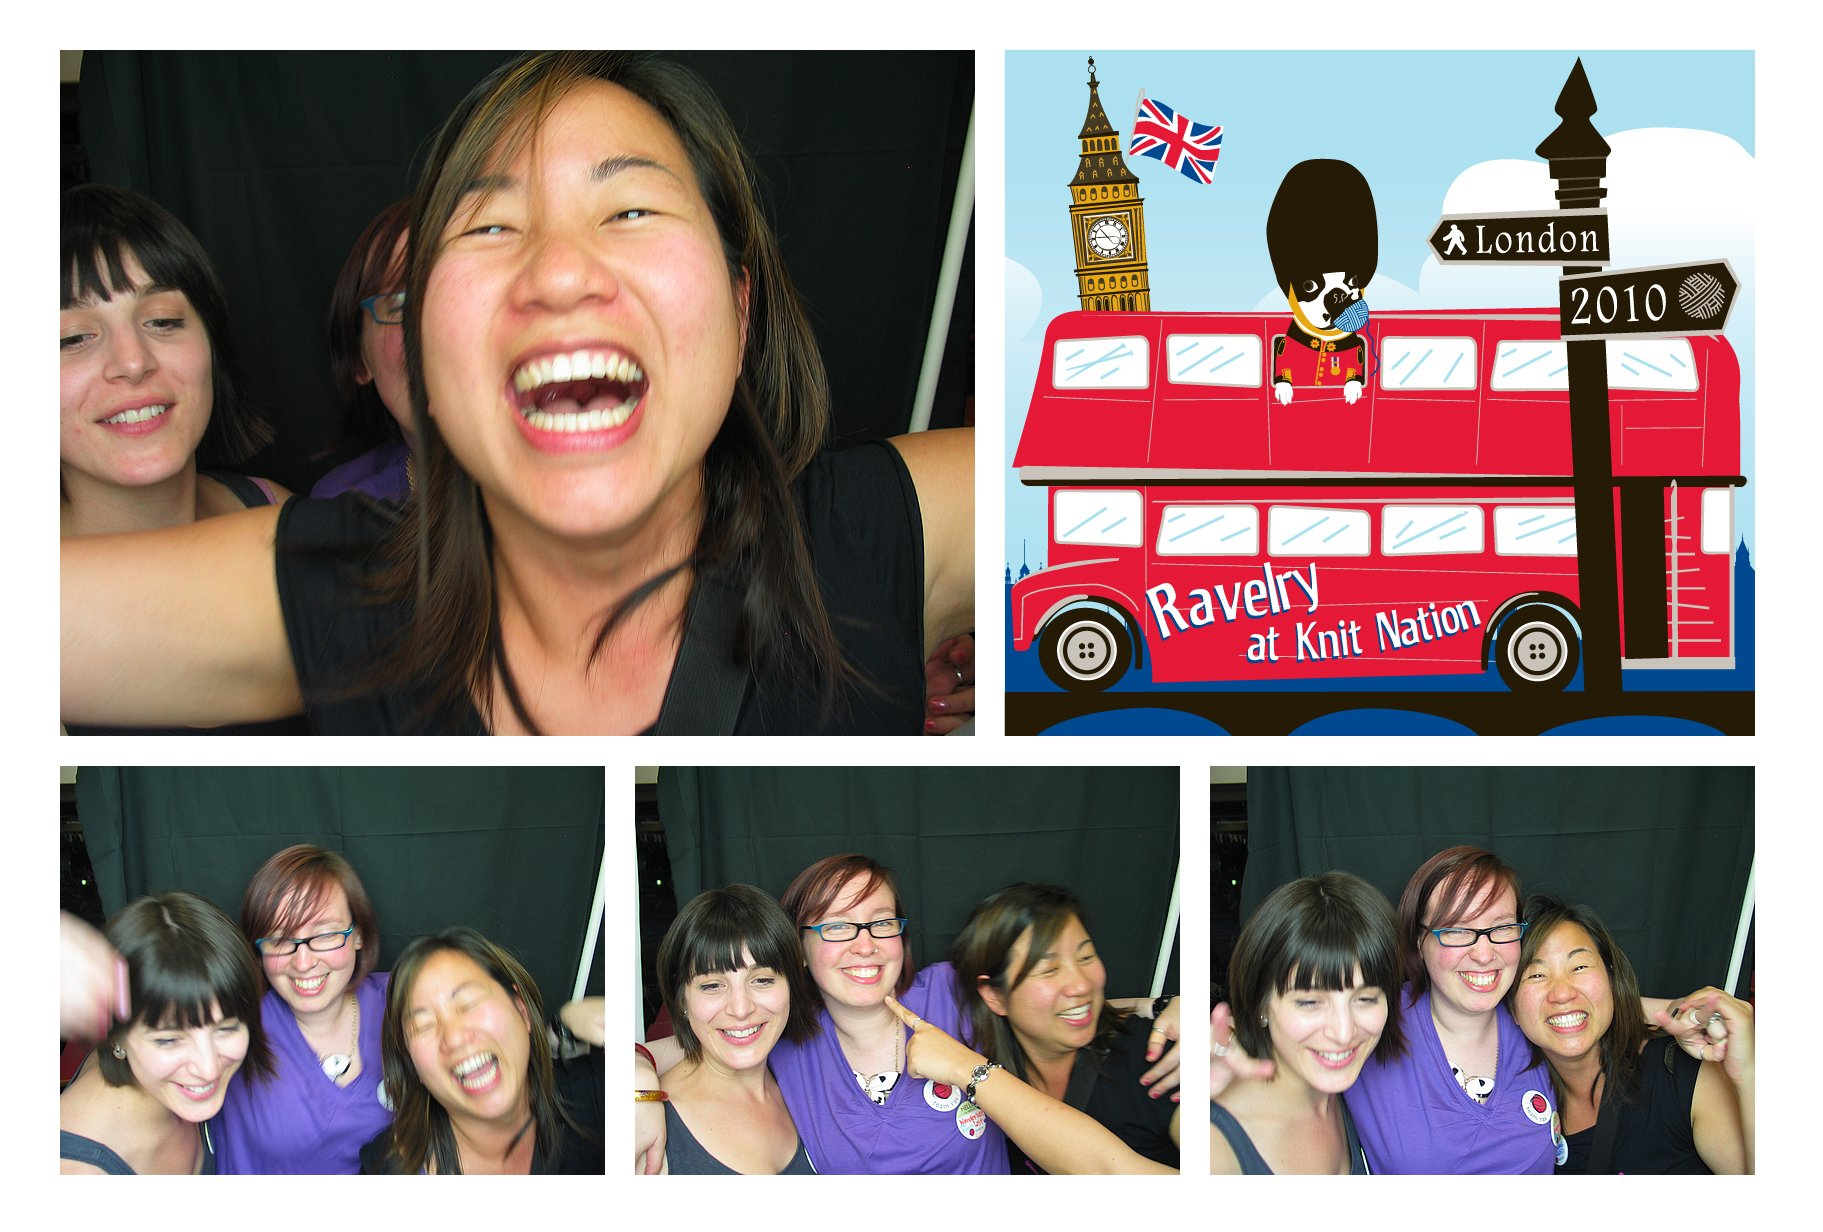 More photo booth fun